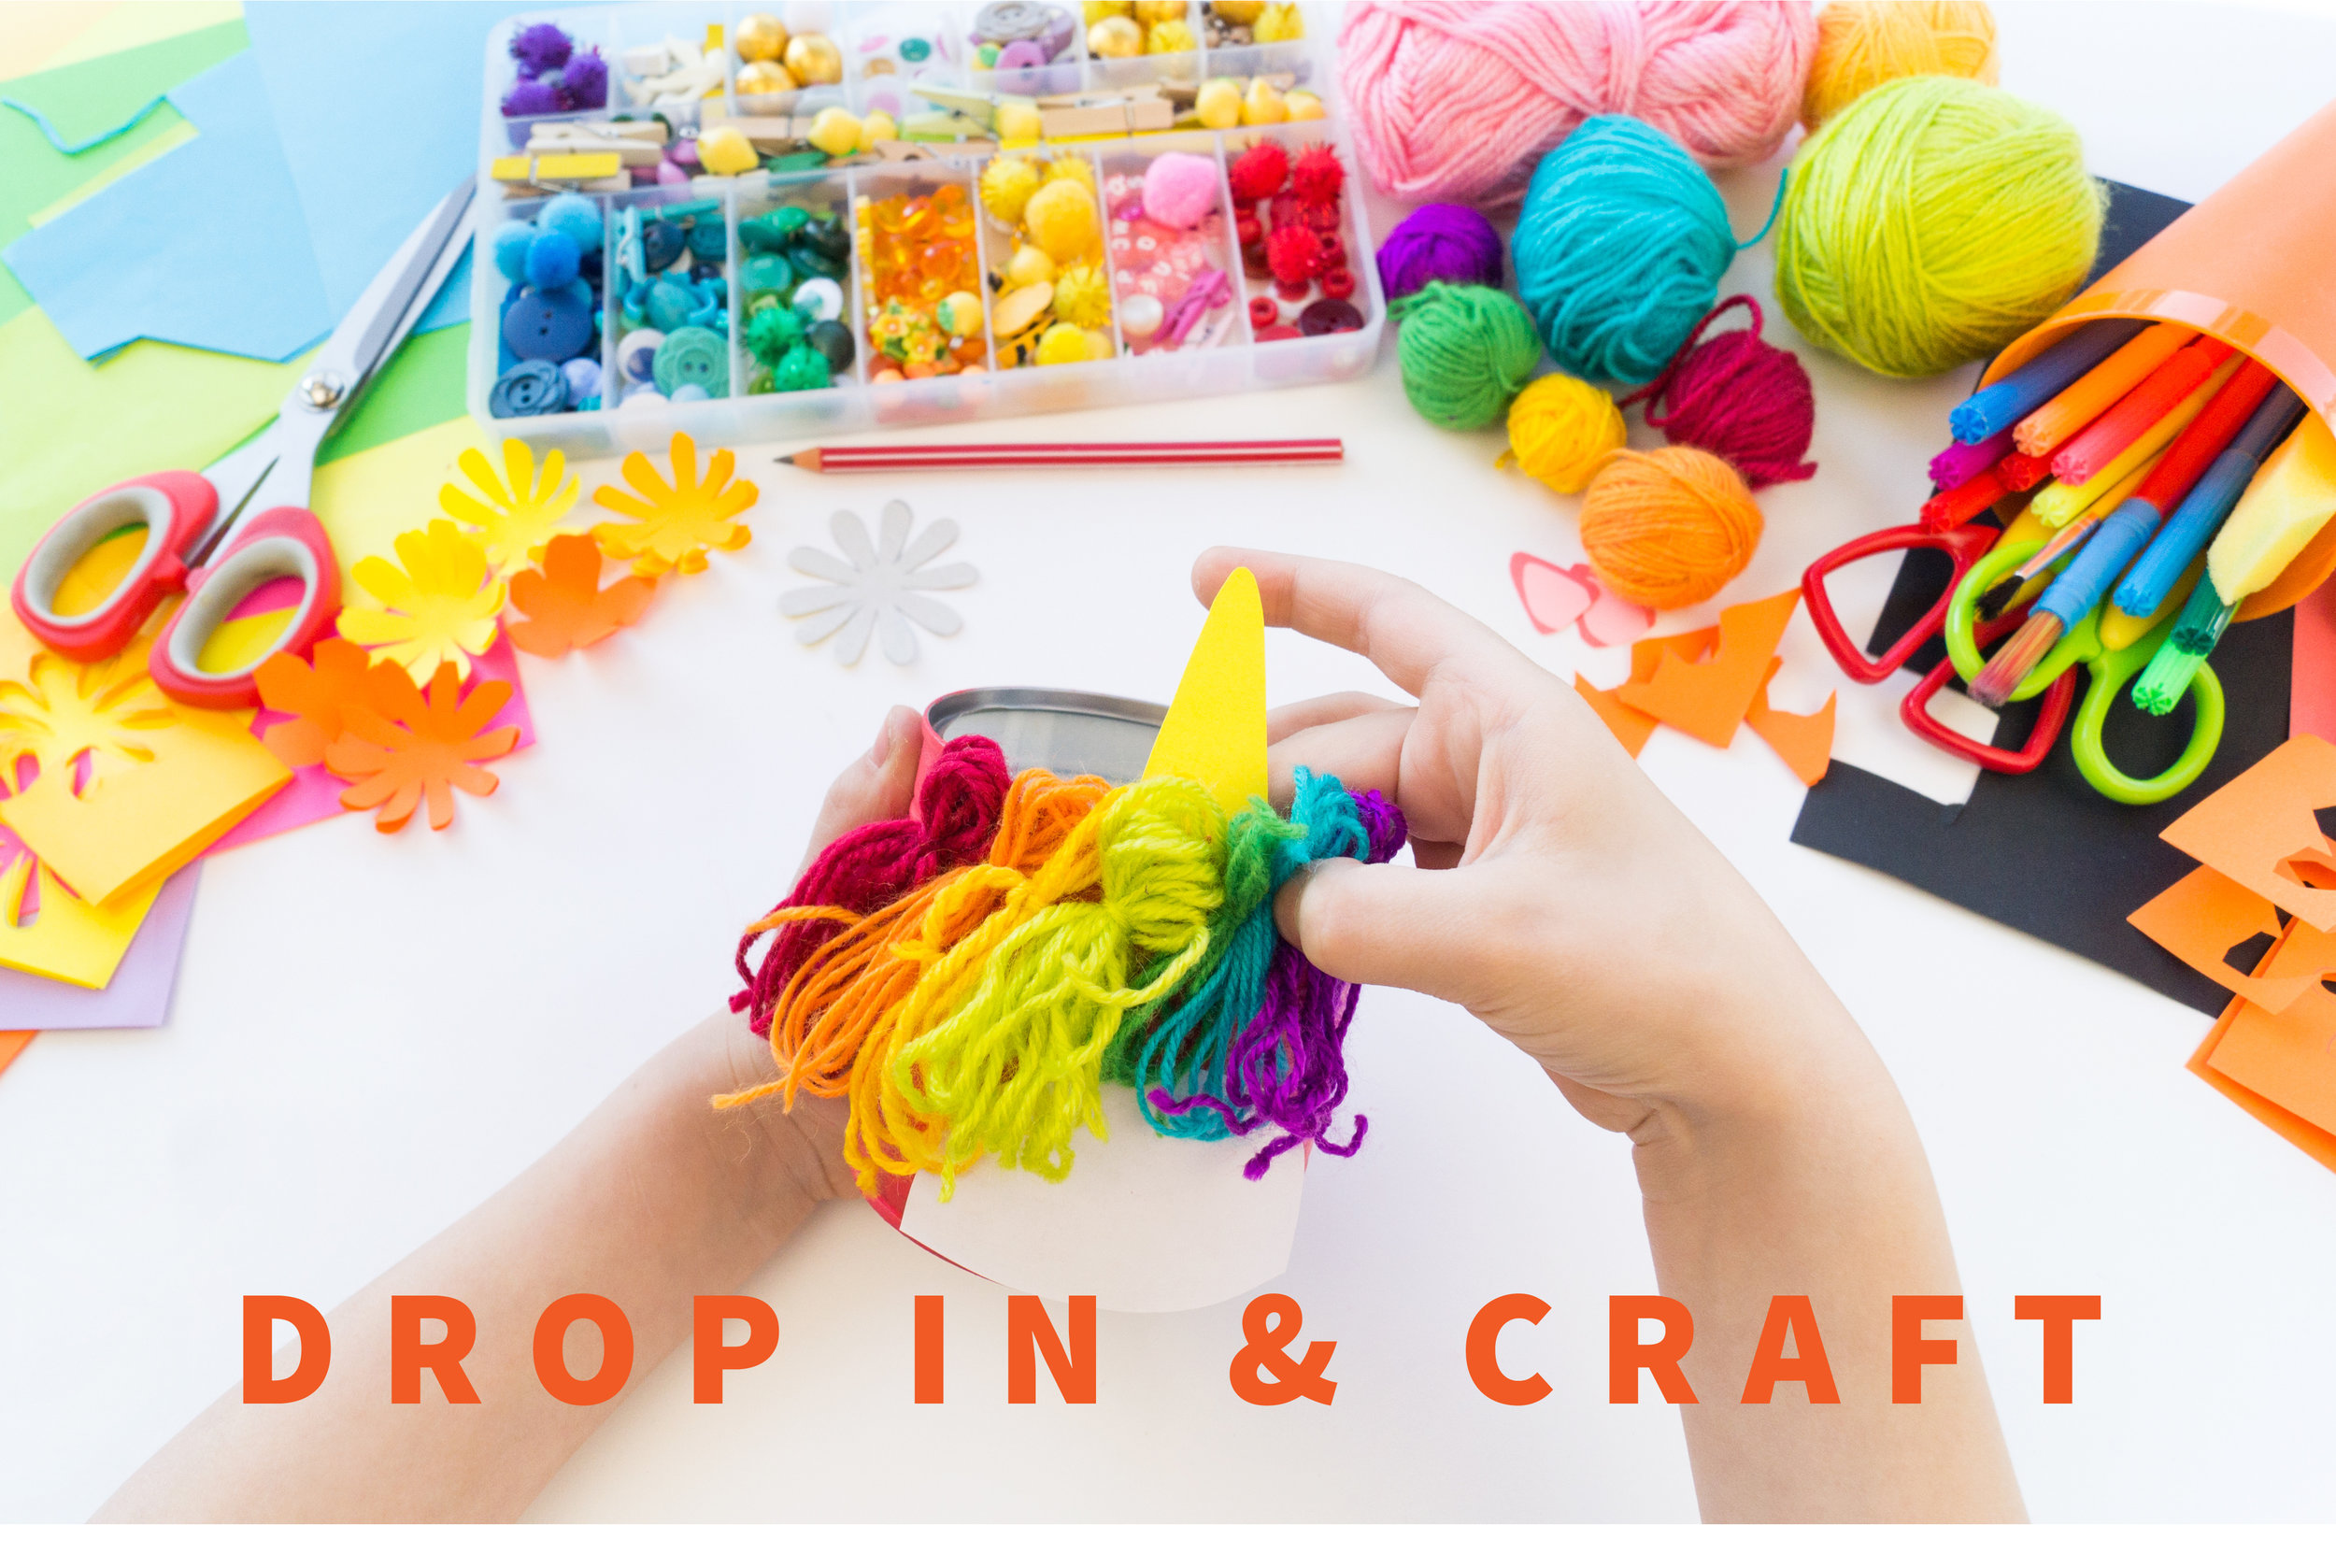 Drop in & Craft graphic.jpg